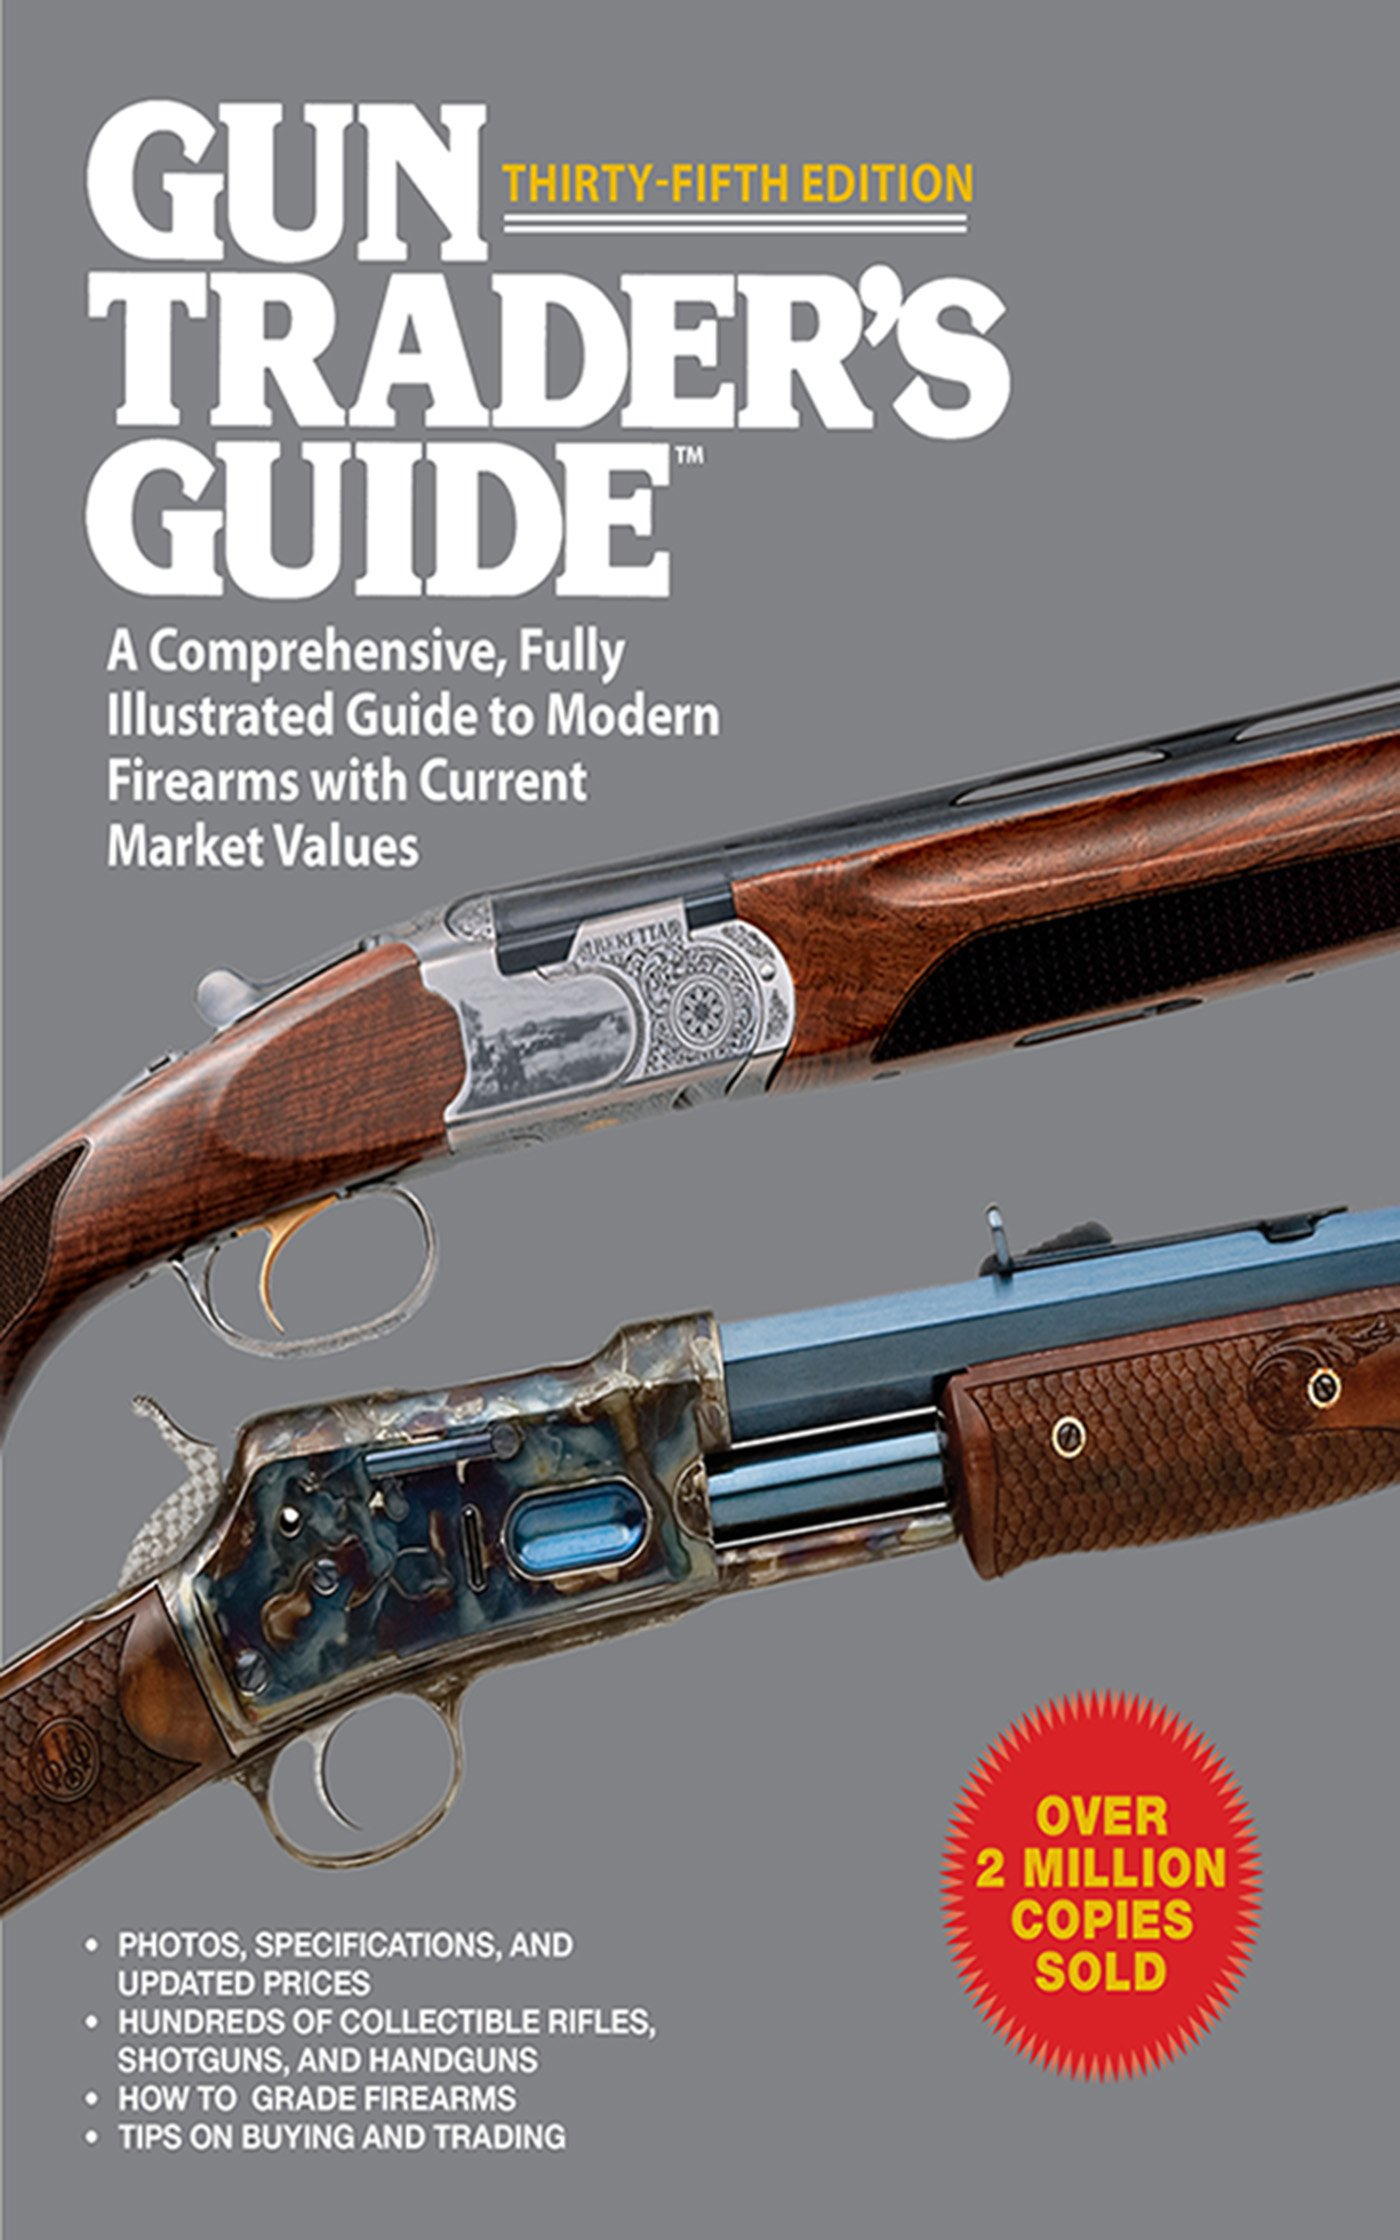 Read Online Gun Trader's Guide to Rifles: A Comprehensive, Fully Illustrated Reference for Modern Rifles with Current Market Values PDF ePub ebook